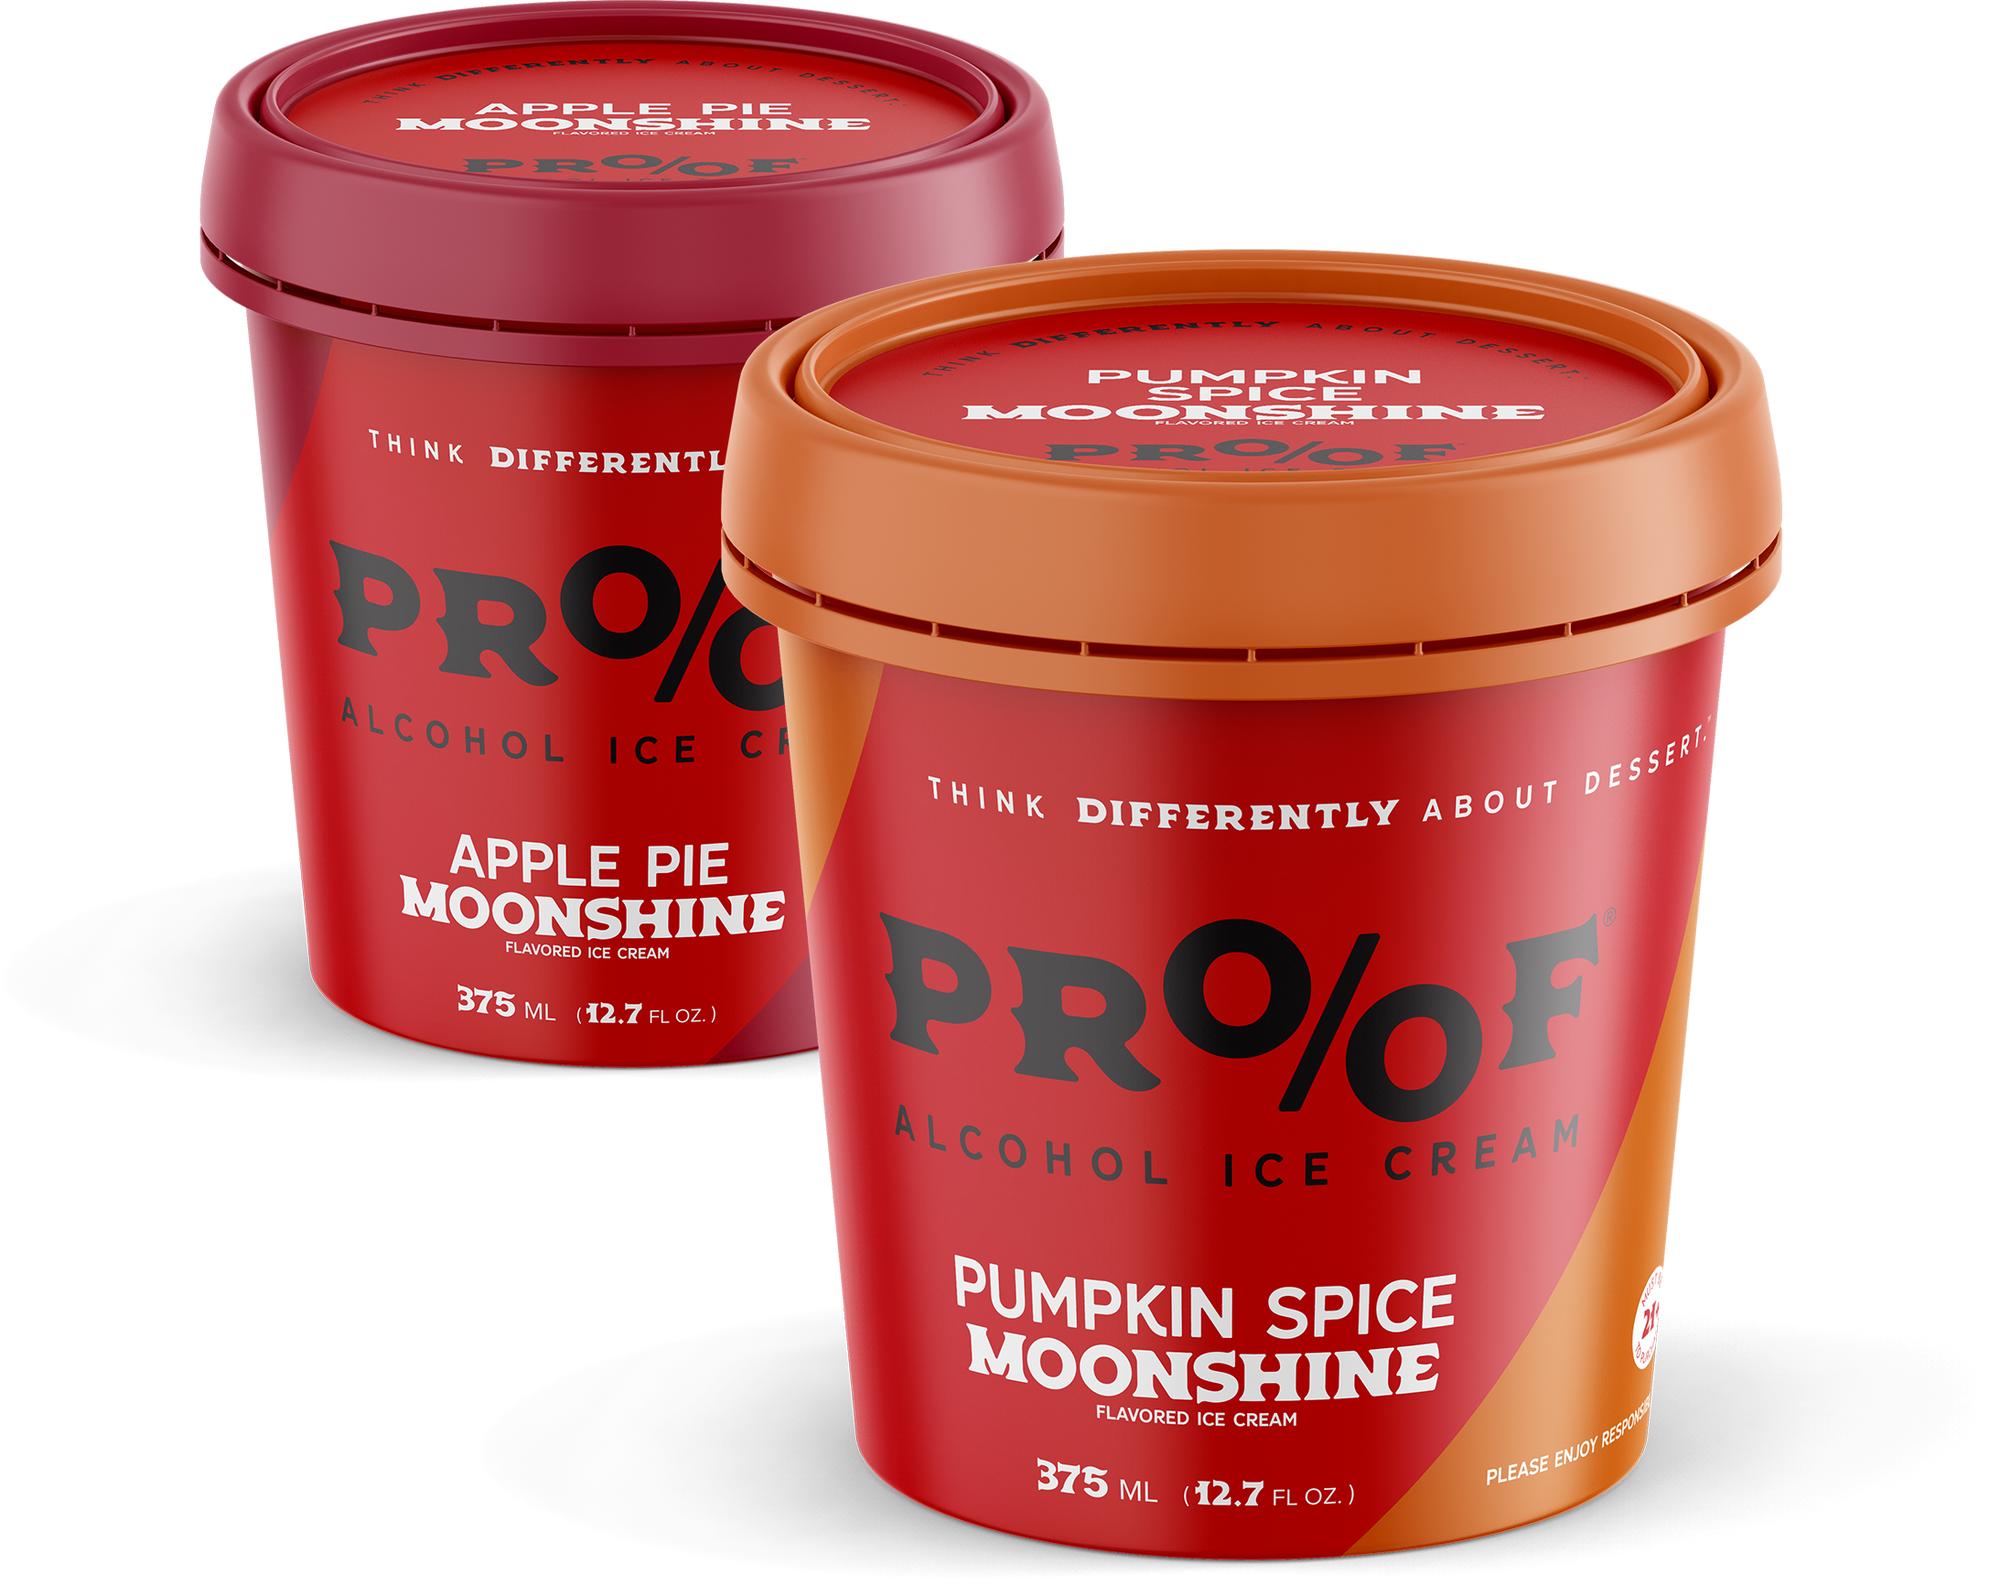 PROOF Alcohol Ice Cream Releases Fall Flavor Favorites Pumpkin Spice & Apple Pie Moonshine